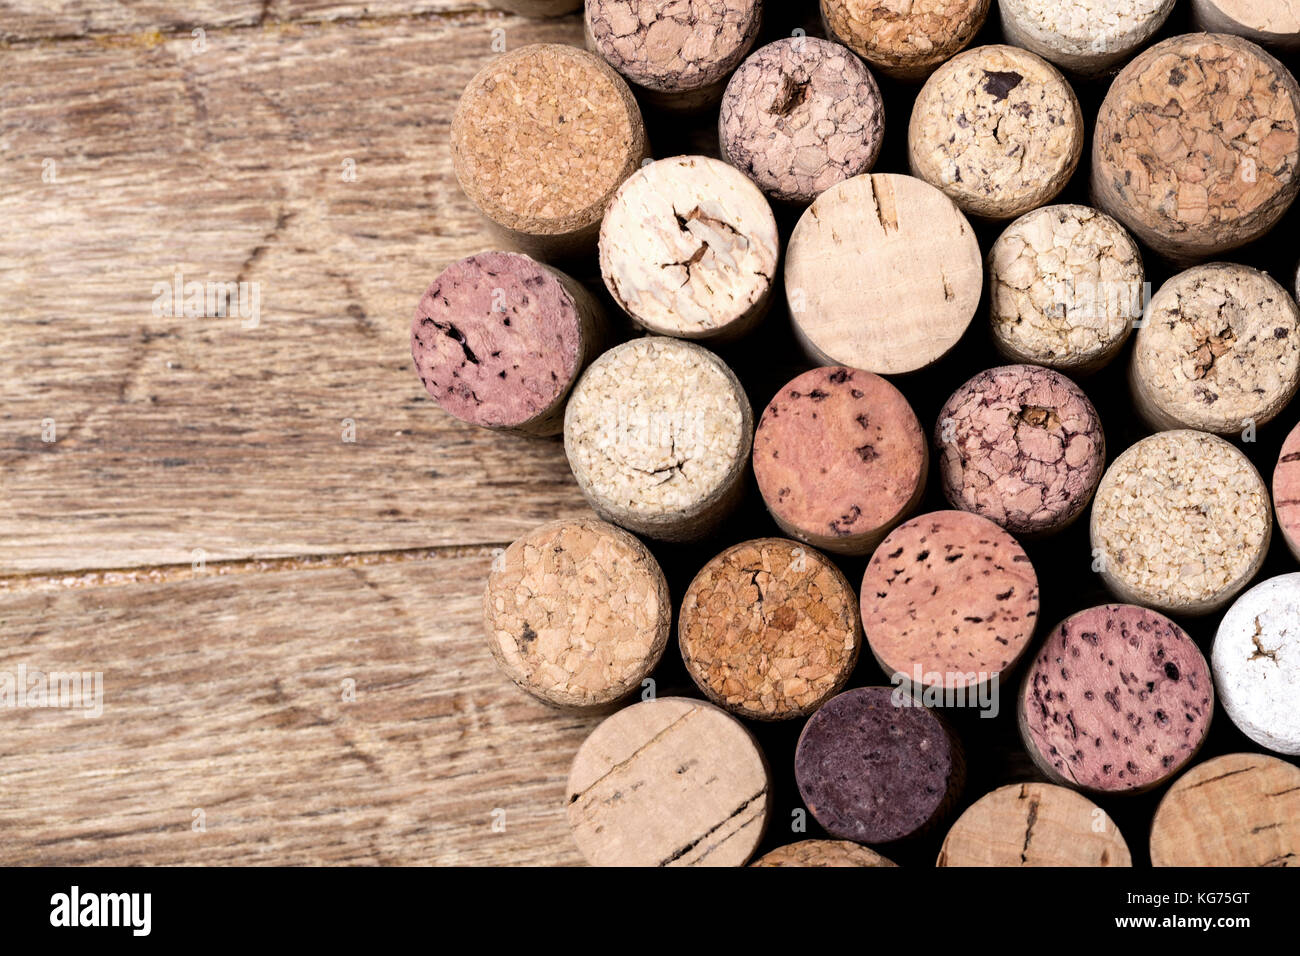 Stacked cork background on wuuden table - Stock Image